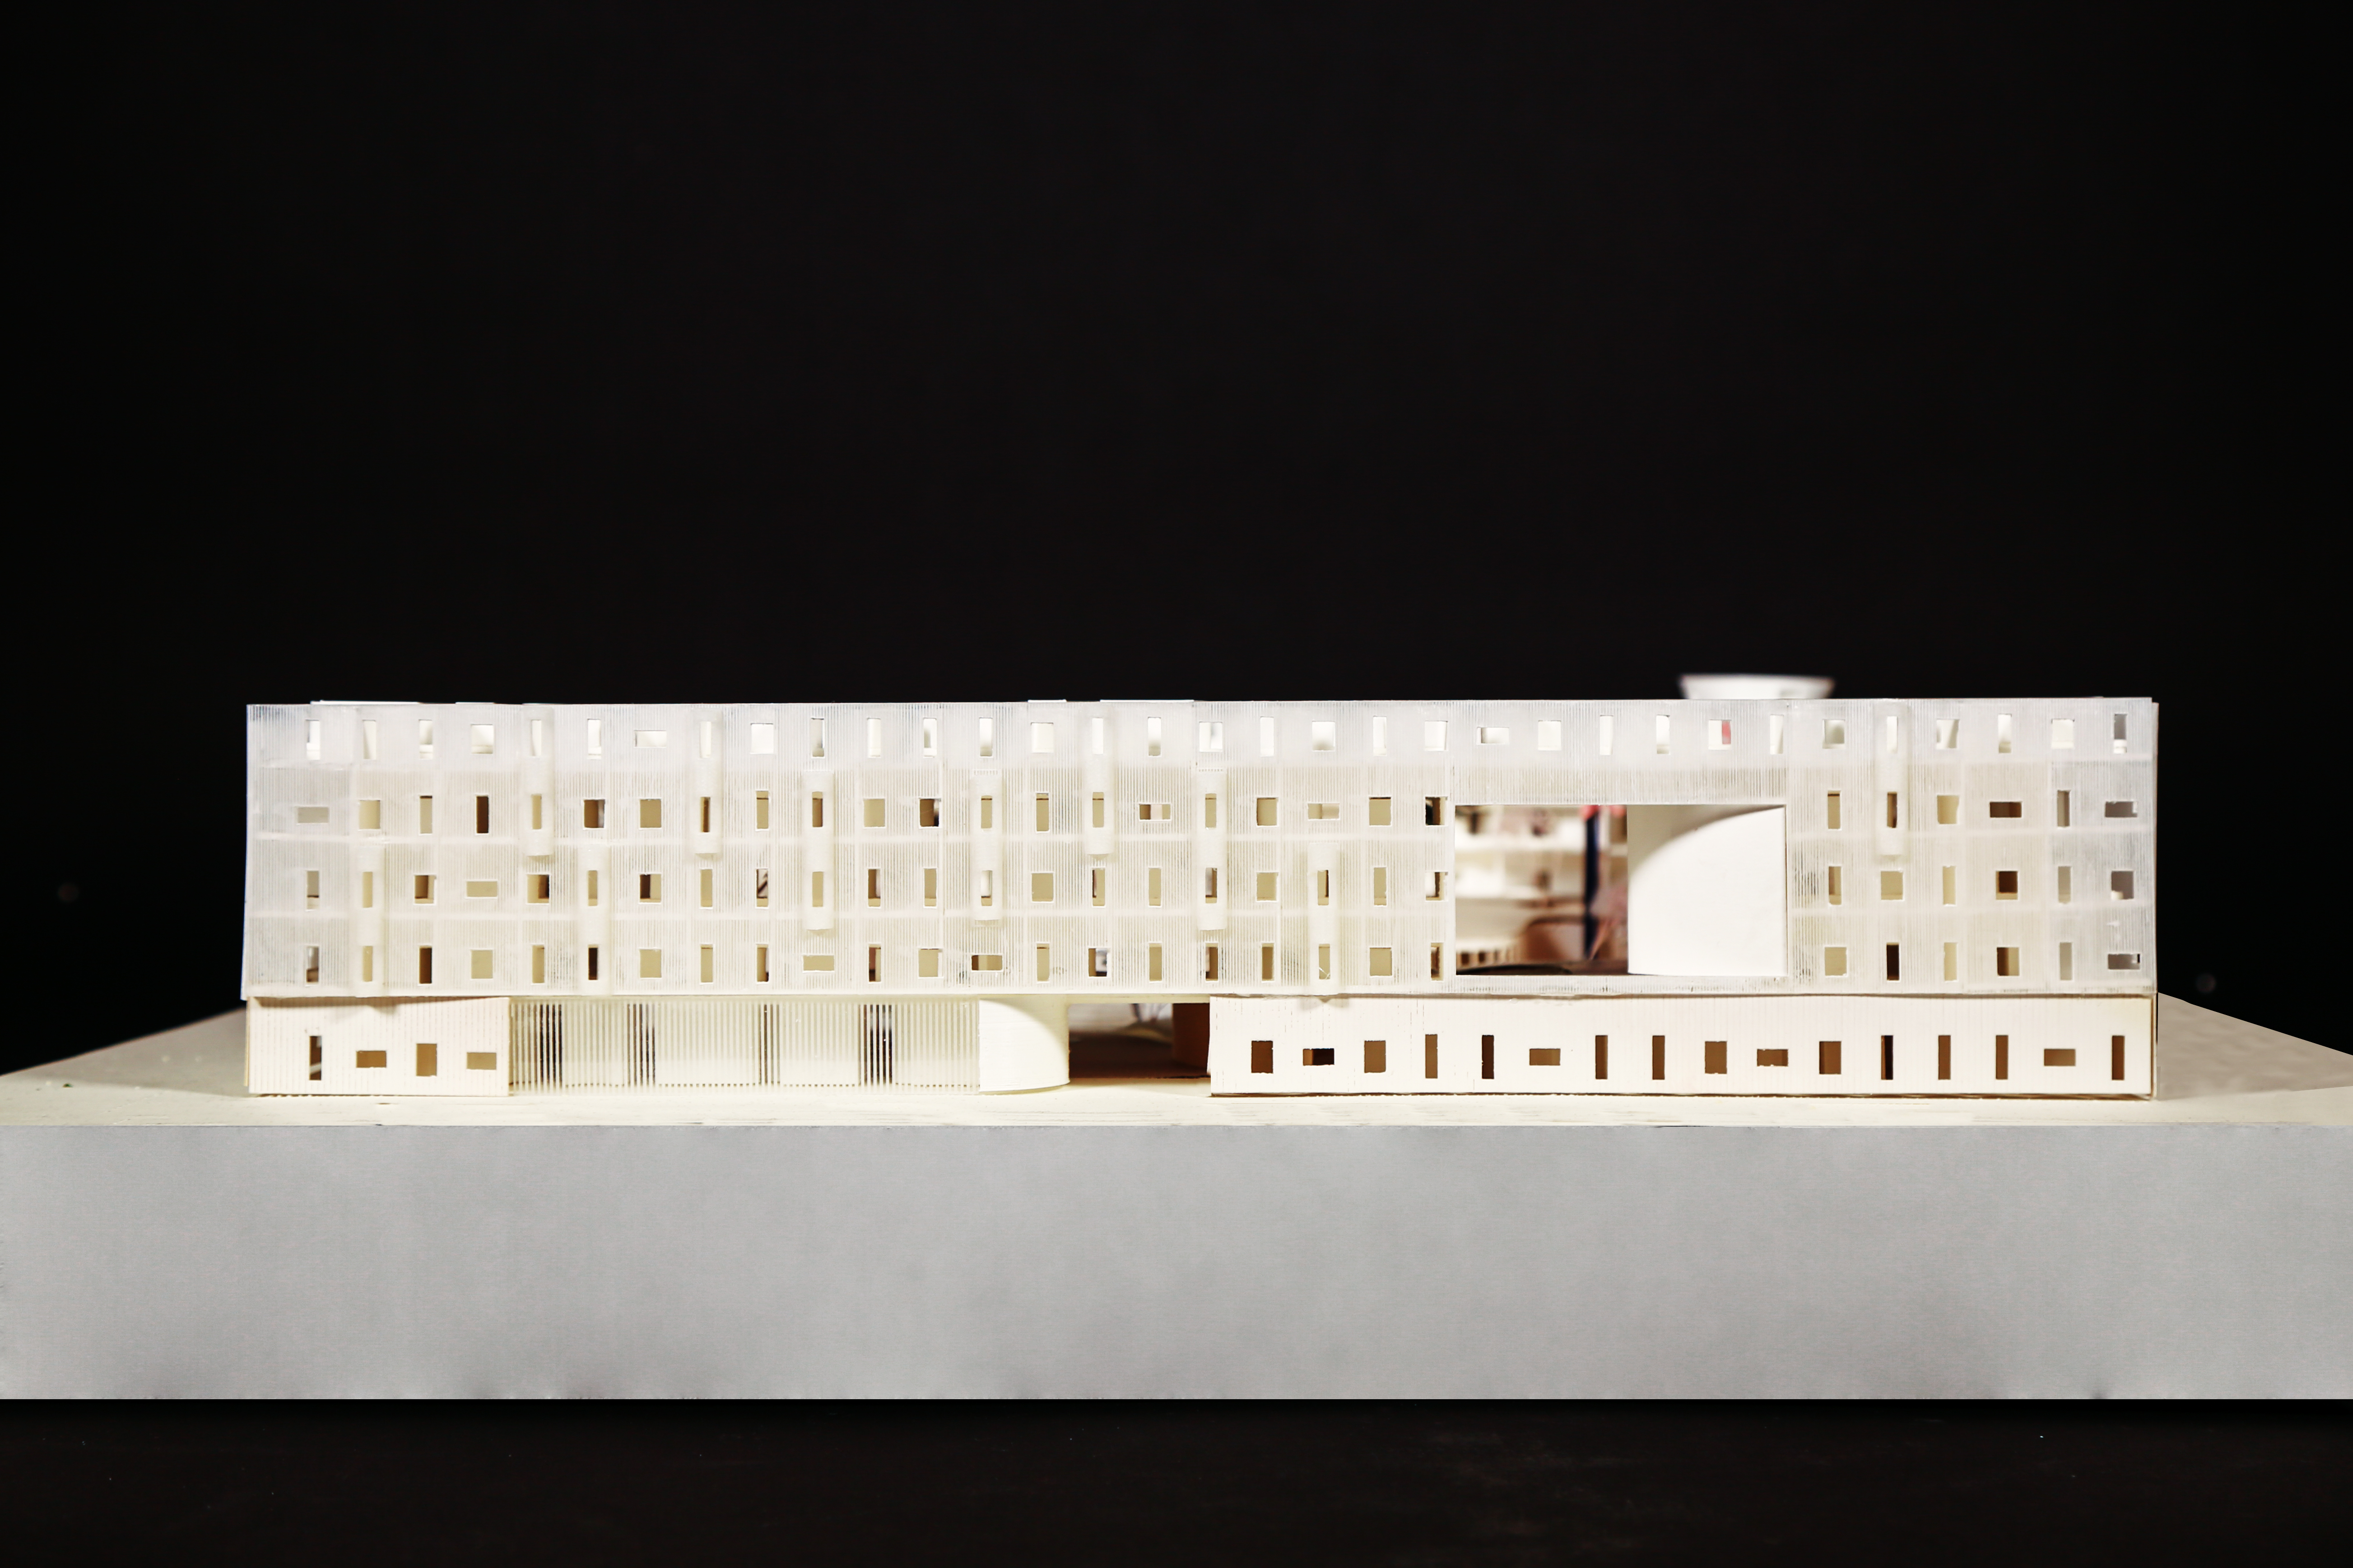 elevation view of housing project model